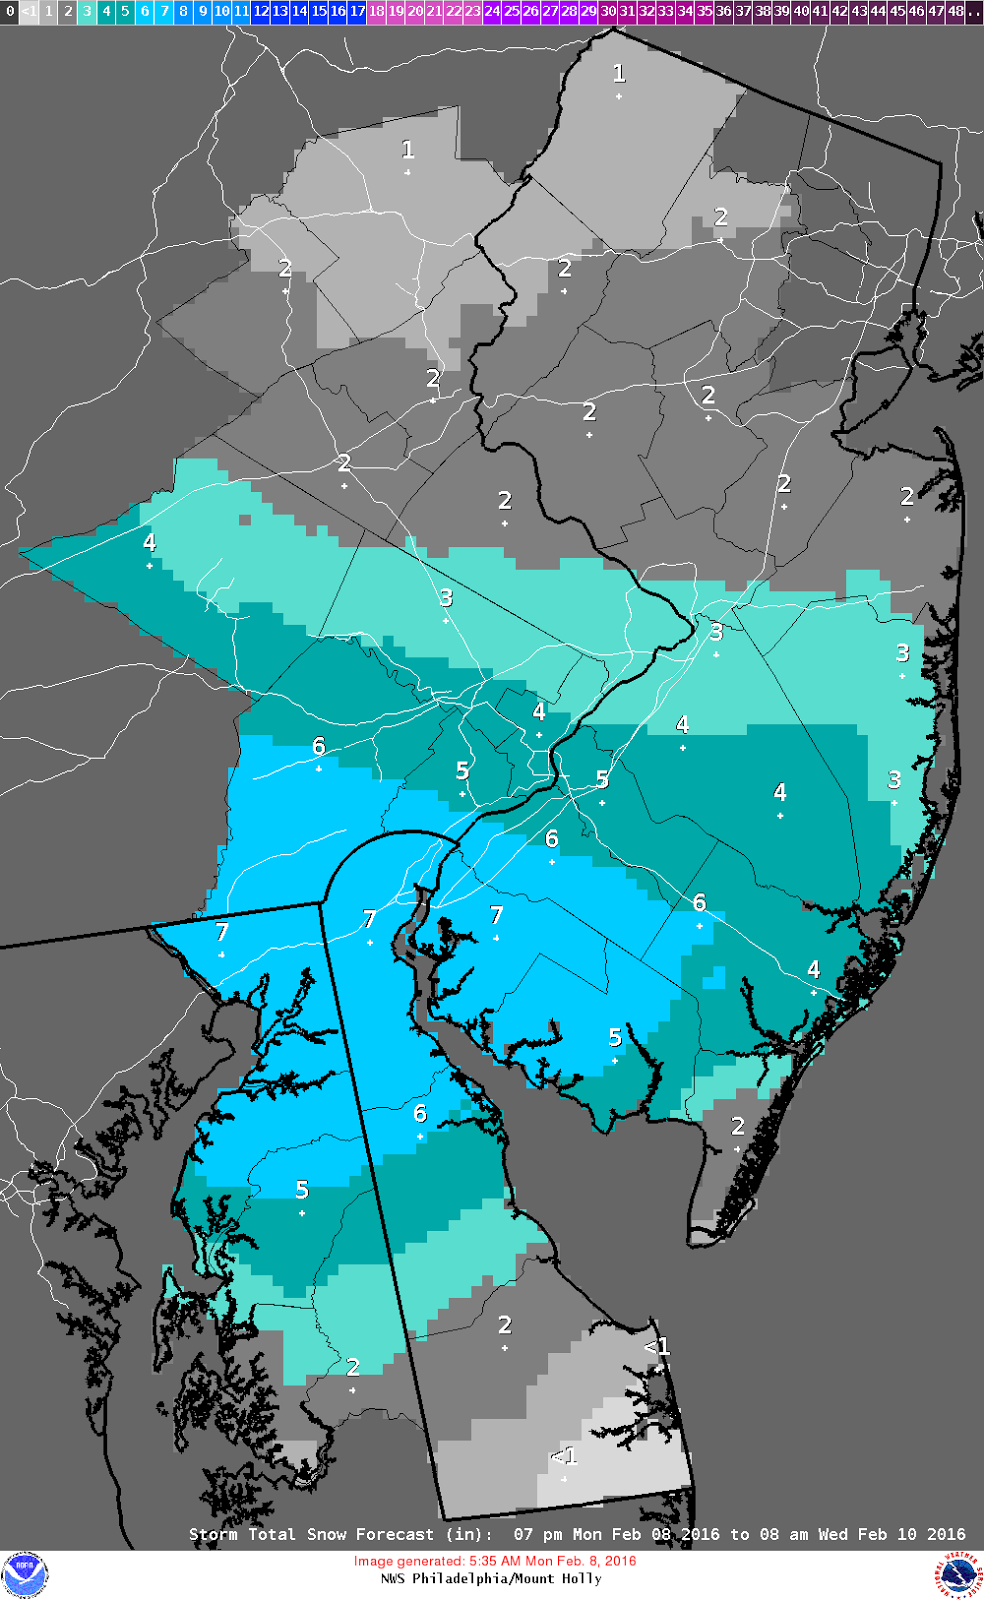 as of now nws phl mtholly has the following accumulations noted for tonight through wednesday